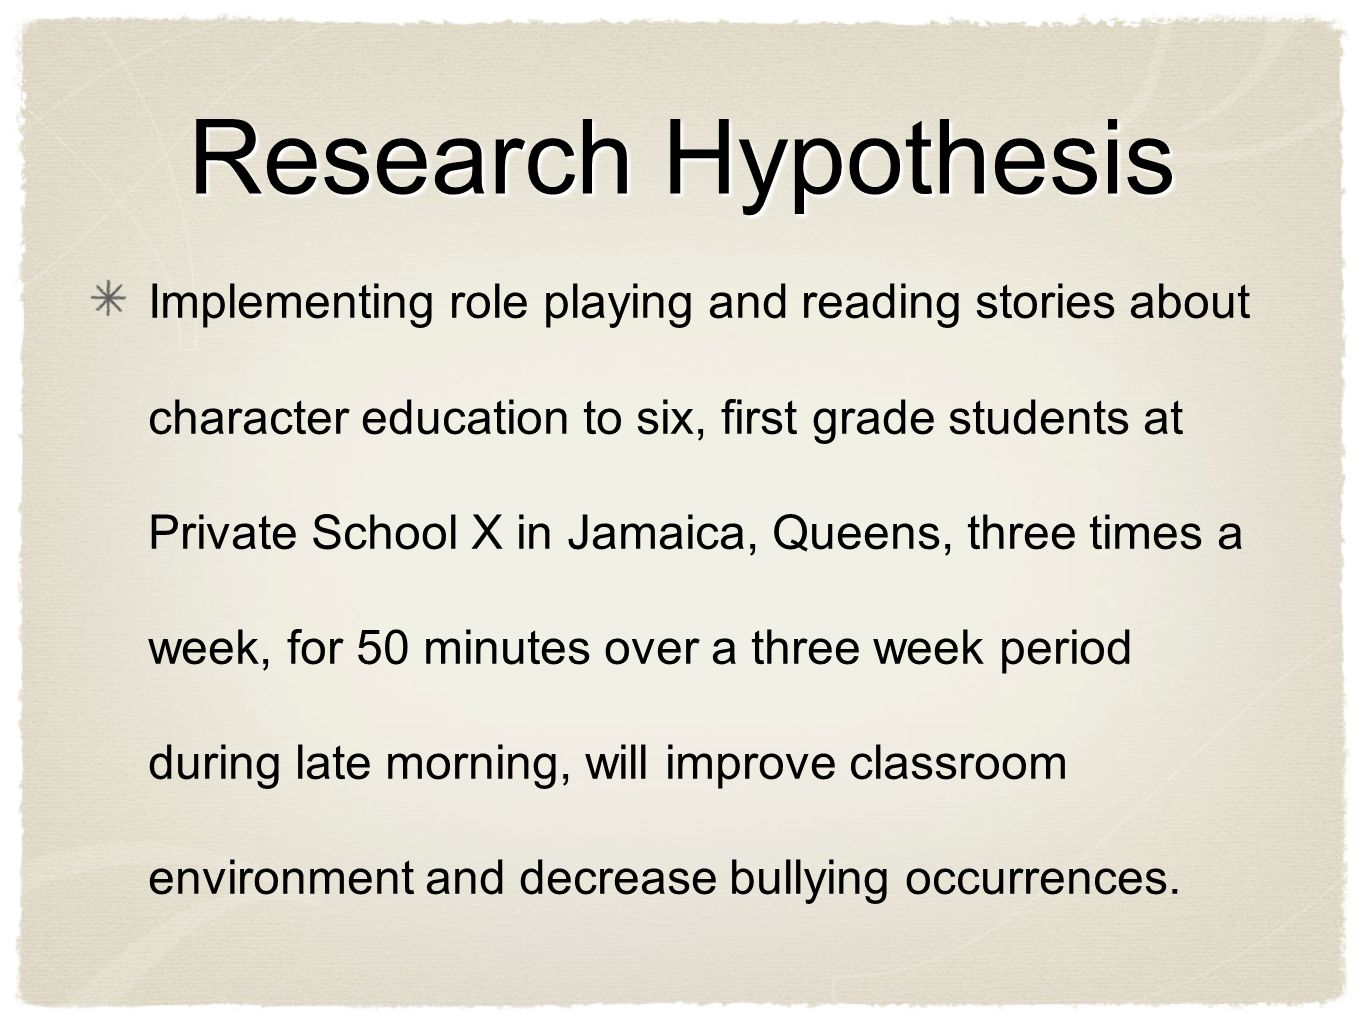 Research Hypothesis Implementing role playing and reading stories about character education to six, first grade students at Private School X in Jamaica, Queens, three times a week, for 50 minutes over a three week period during late morning, will improve classroom environment and decrease bullying occurrences.